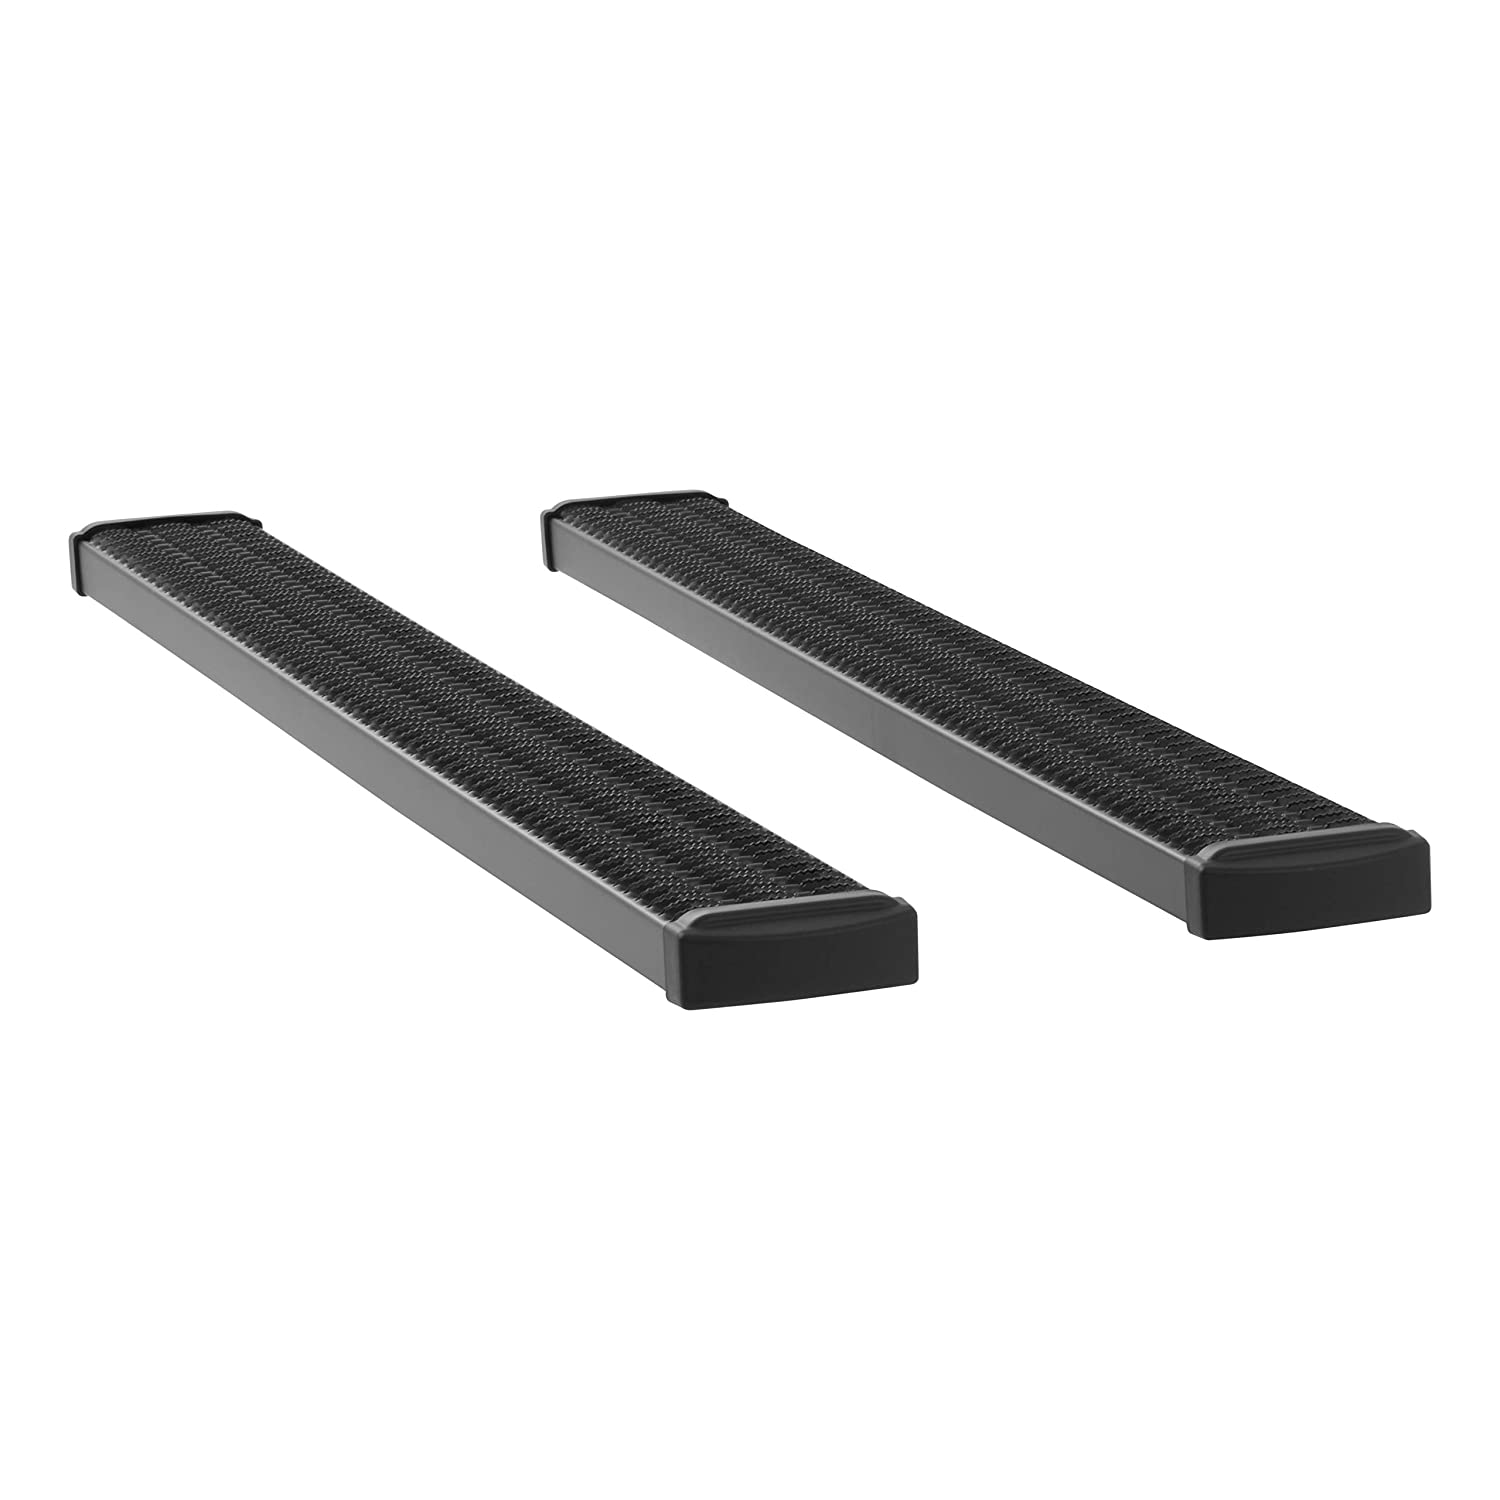 F-350 LUVERNE 415078-409922 Grip Step Black Aluminum 78-Inch Truck Running Boards for Select Ford F-250 F-450 F-550 Super Duty